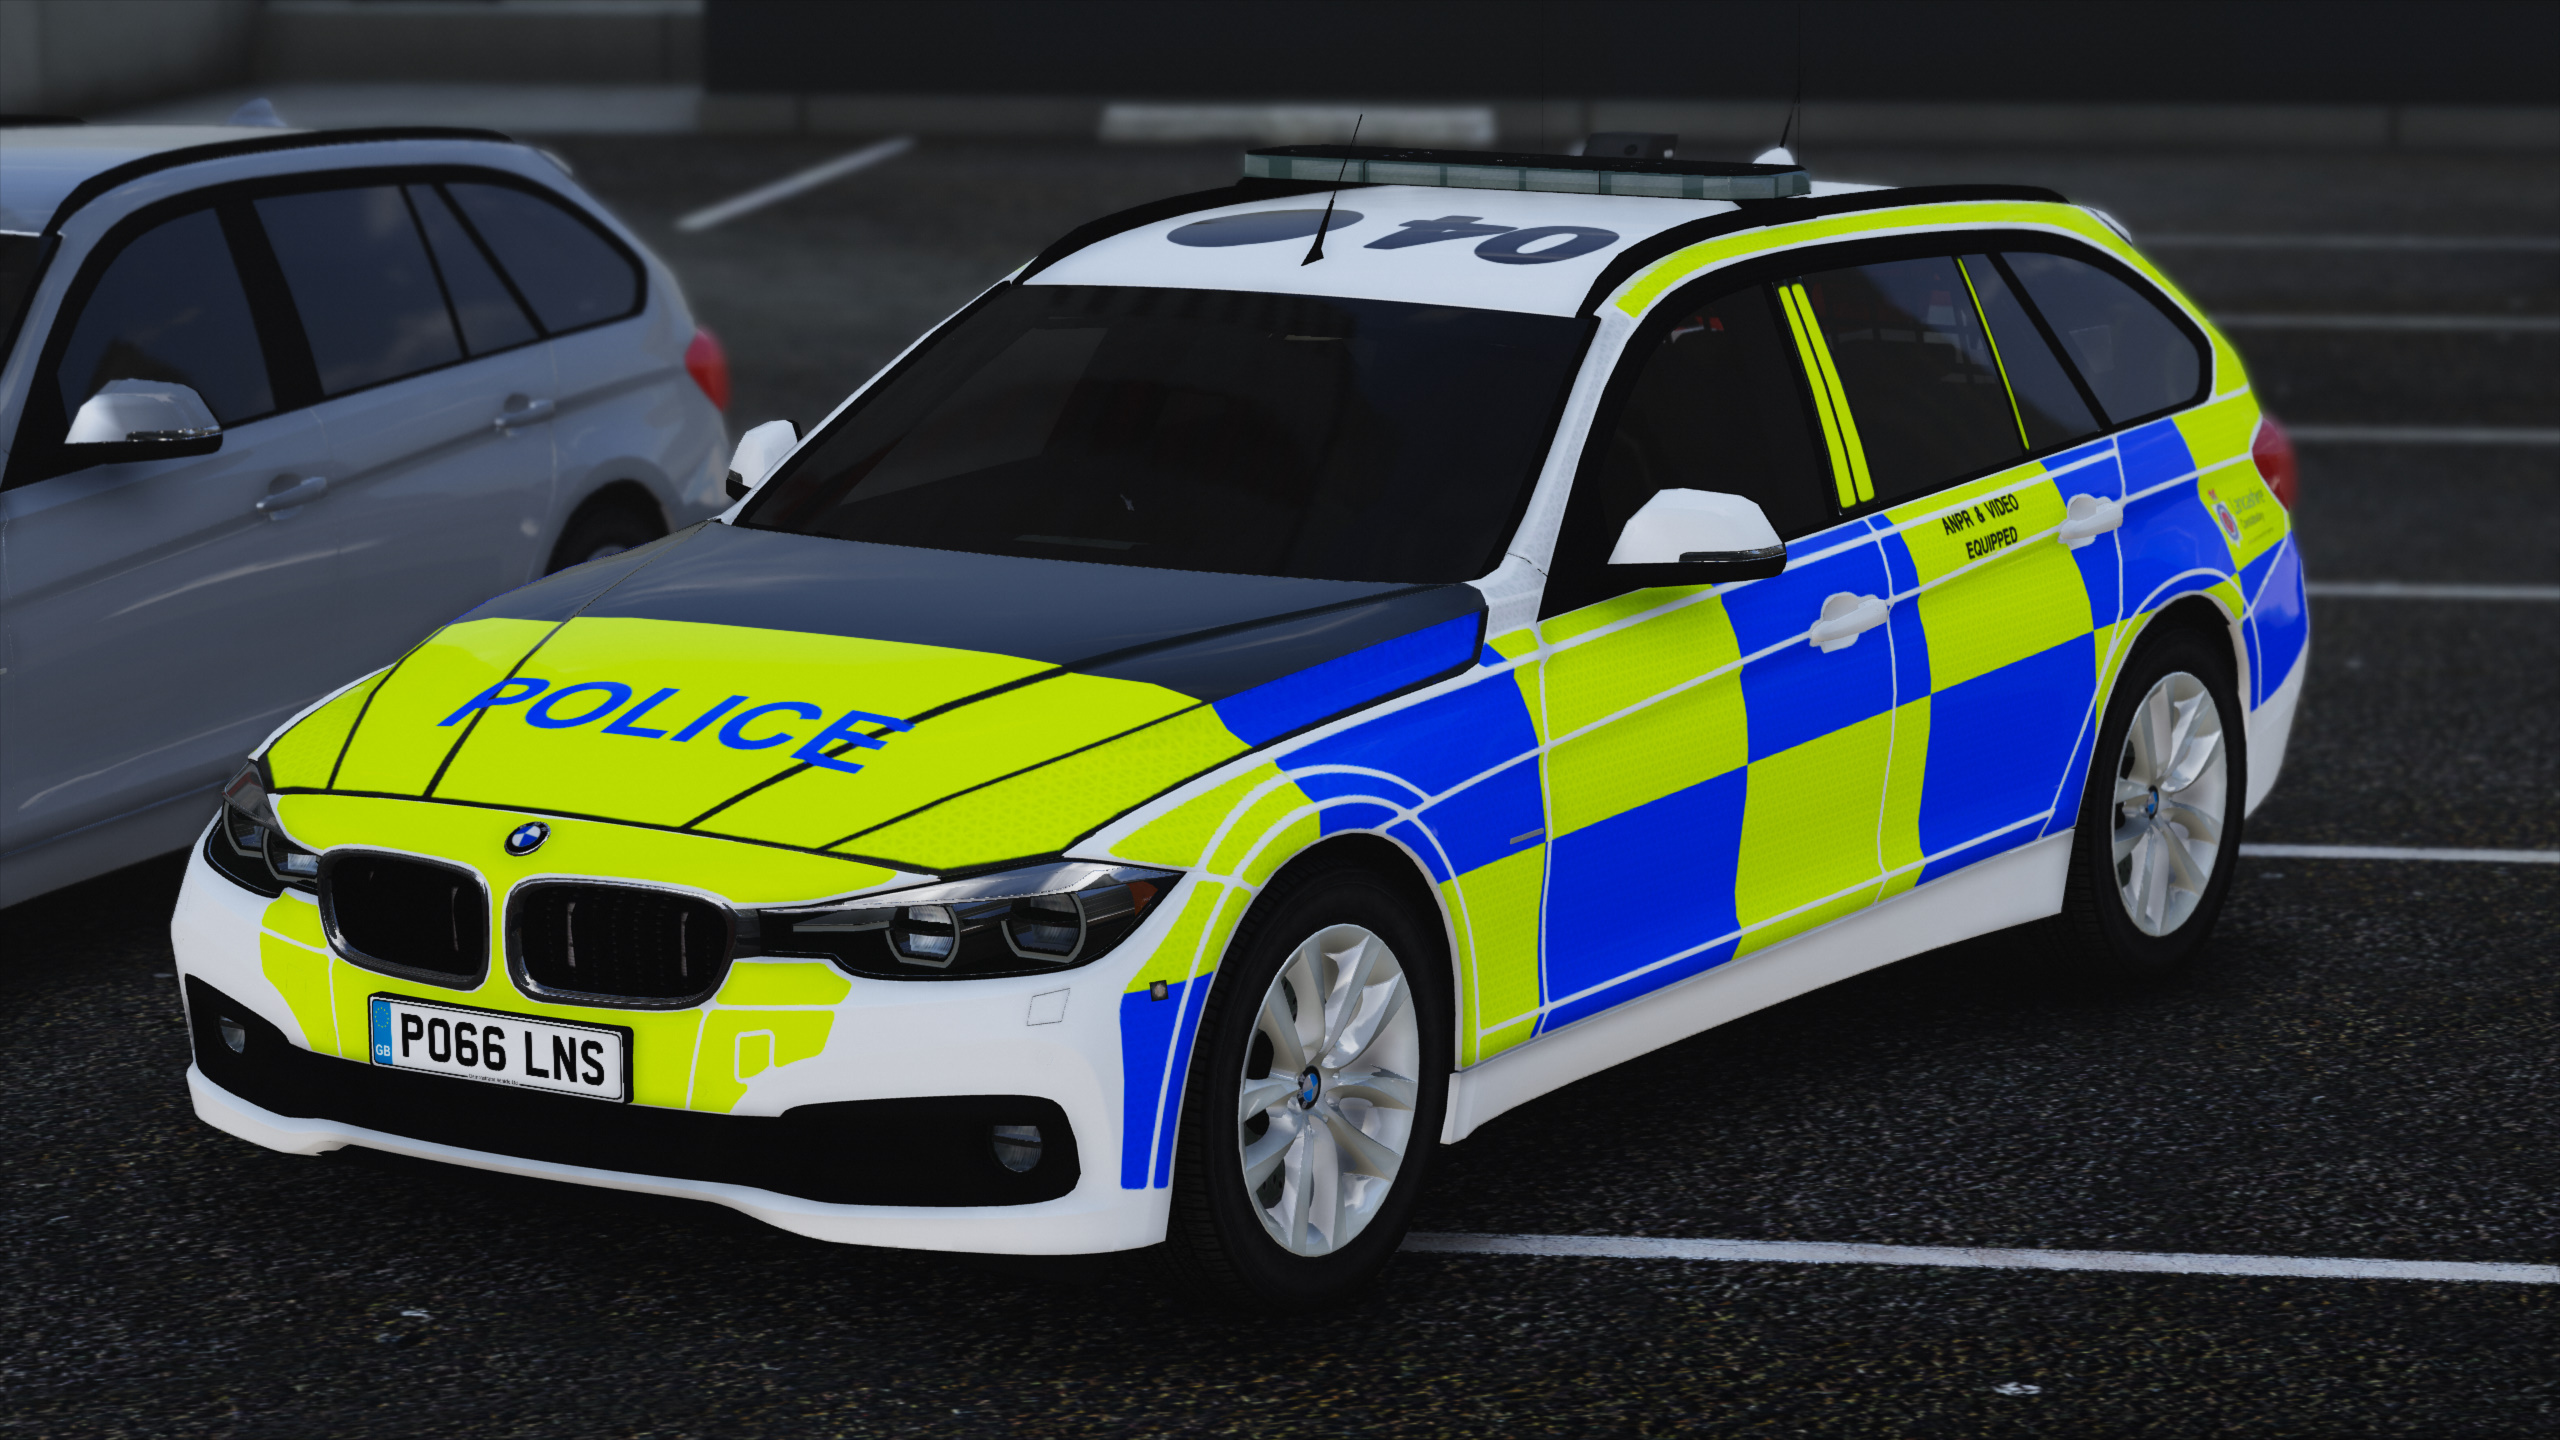 2016 2017 police bmw 330d touring els gta5. Black Bedroom Furniture Sets. Home Design Ideas